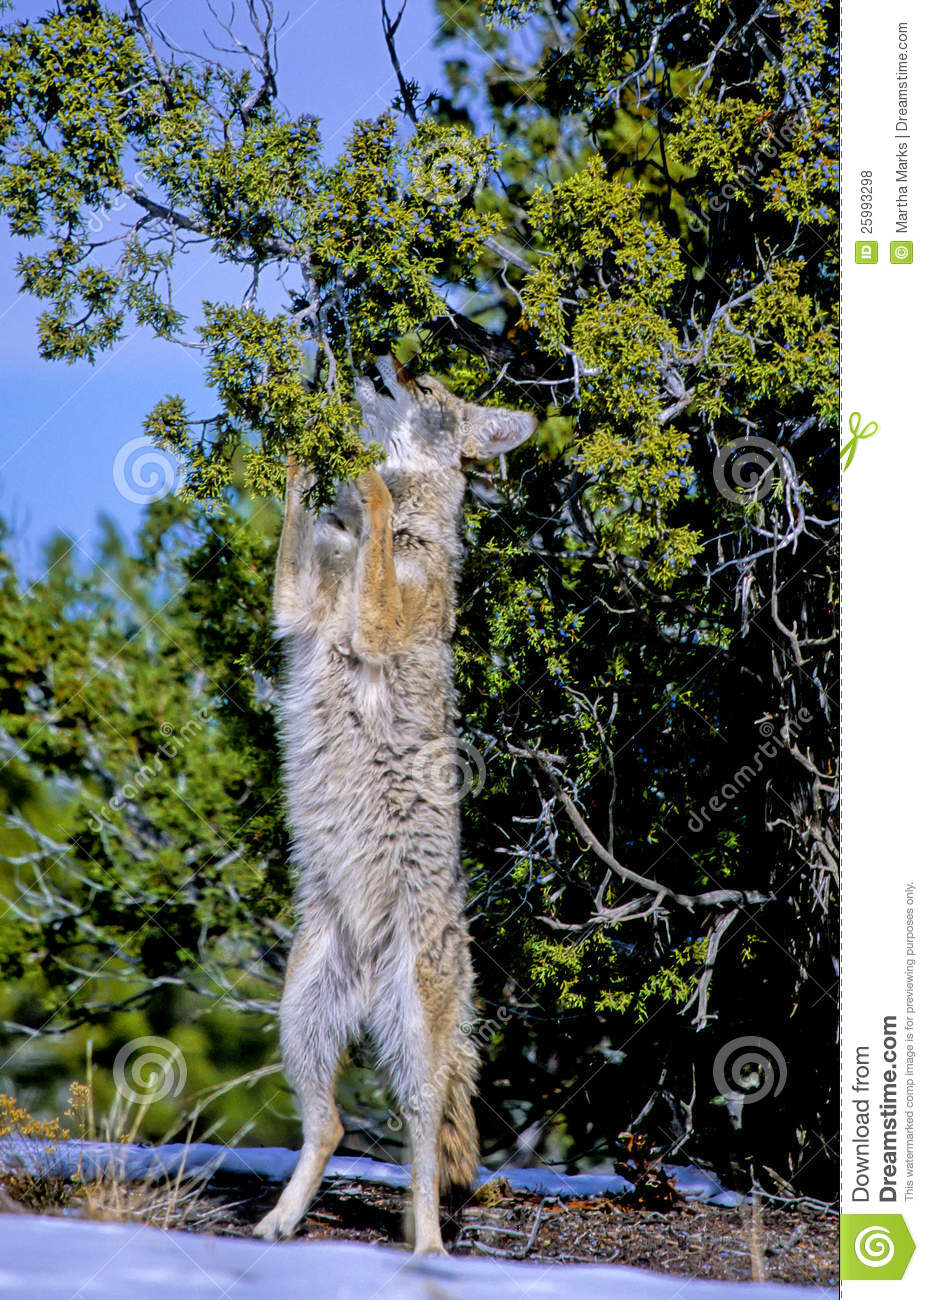 Coyote Canis Latrans Stock Photo Image Of Carnivore 25993298